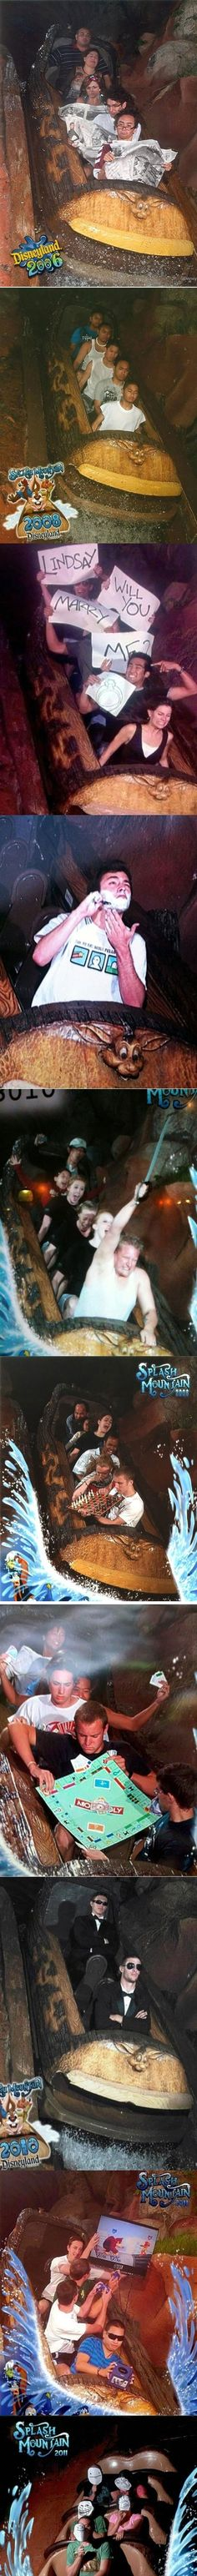 Best of Disneyland's Splash Mountain. Babe, can we pleeeeeease do this next time???